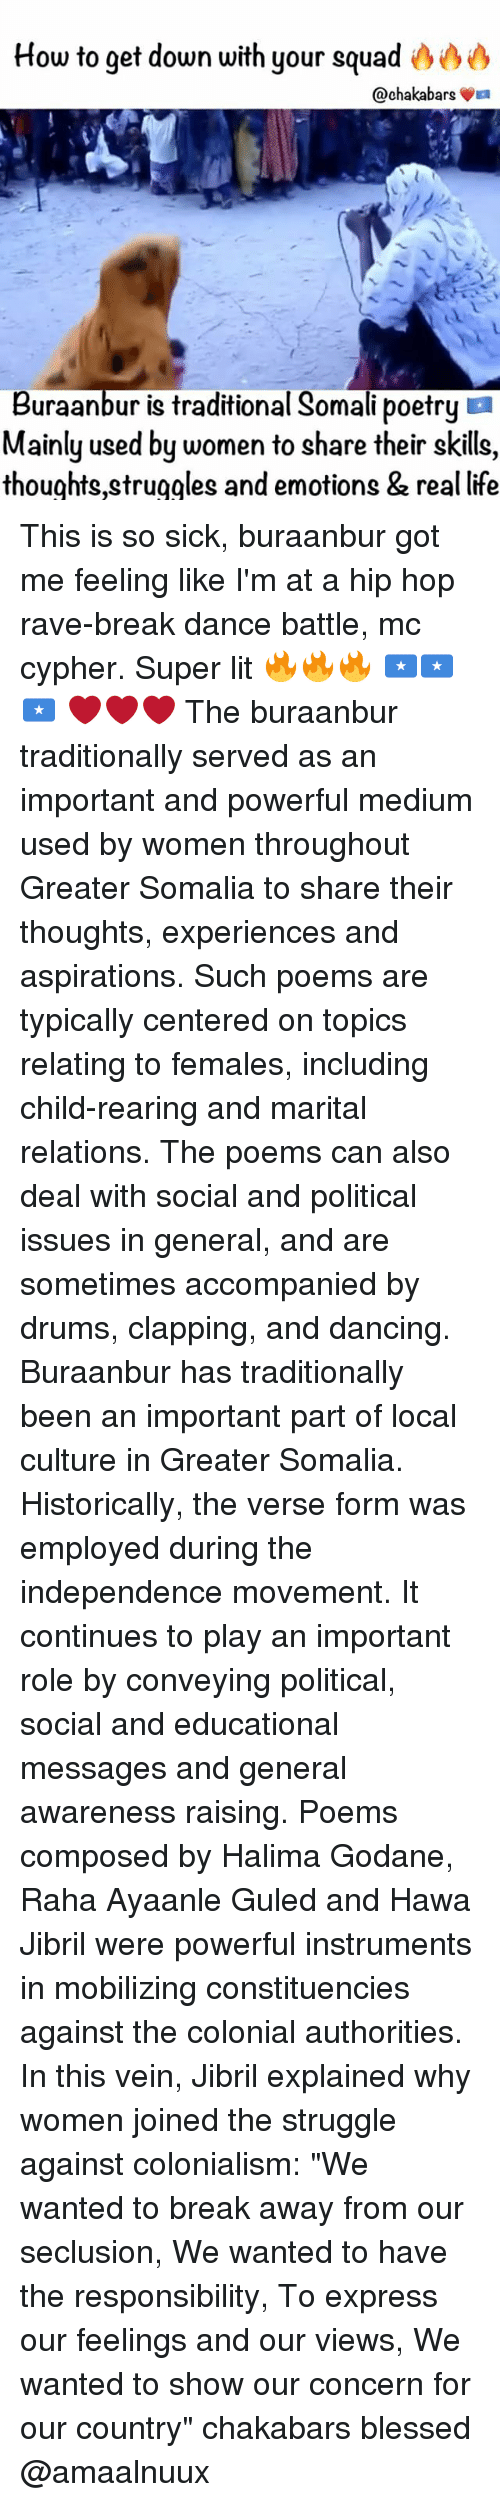 """colonialism: How to get down with your squad  @chaka bars  La  Buraanbur is traditional Somali poetry  Mainly used by women to share their skills,  thoughts struggles and emotions & real life This is so sick, buraanbur got me feeling like I'm at a hip hop rave-break dance battle, mc cypher. Super lit 🔥🔥🔥 🇸🇴🇸🇴🇸🇴 ❤️❤️❤️ The buraanbur traditionally served as an important and powerful medium used by women throughout Greater Somalia to share their thoughts, experiences and aspirations. Such poems are typically centered on topics relating to females, including child-rearing and marital relations. The poems can also deal with social and political issues in general, and are sometimes accompanied by drums, clapping, and dancing. Buraanbur has traditionally been an important part of local culture in Greater Somalia. Historically, the verse form was employed during the independence movement. It continues to play an important role by conveying political, social and educational messages and general awareness raising. Poems composed by Halima Godane, Raha Ayaanle Guled and Hawa Jibril were powerful instruments in mobilizing constituencies against the colonial authorities. In this vein, Jibril explained why women joined the struggle against colonialism: """"We wanted to break away from our seclusion, We wanted to have the responsibility, To express our feelings and our views, We wanted to show our concern for our country"""" chakabars blessed @amaalnuux"""